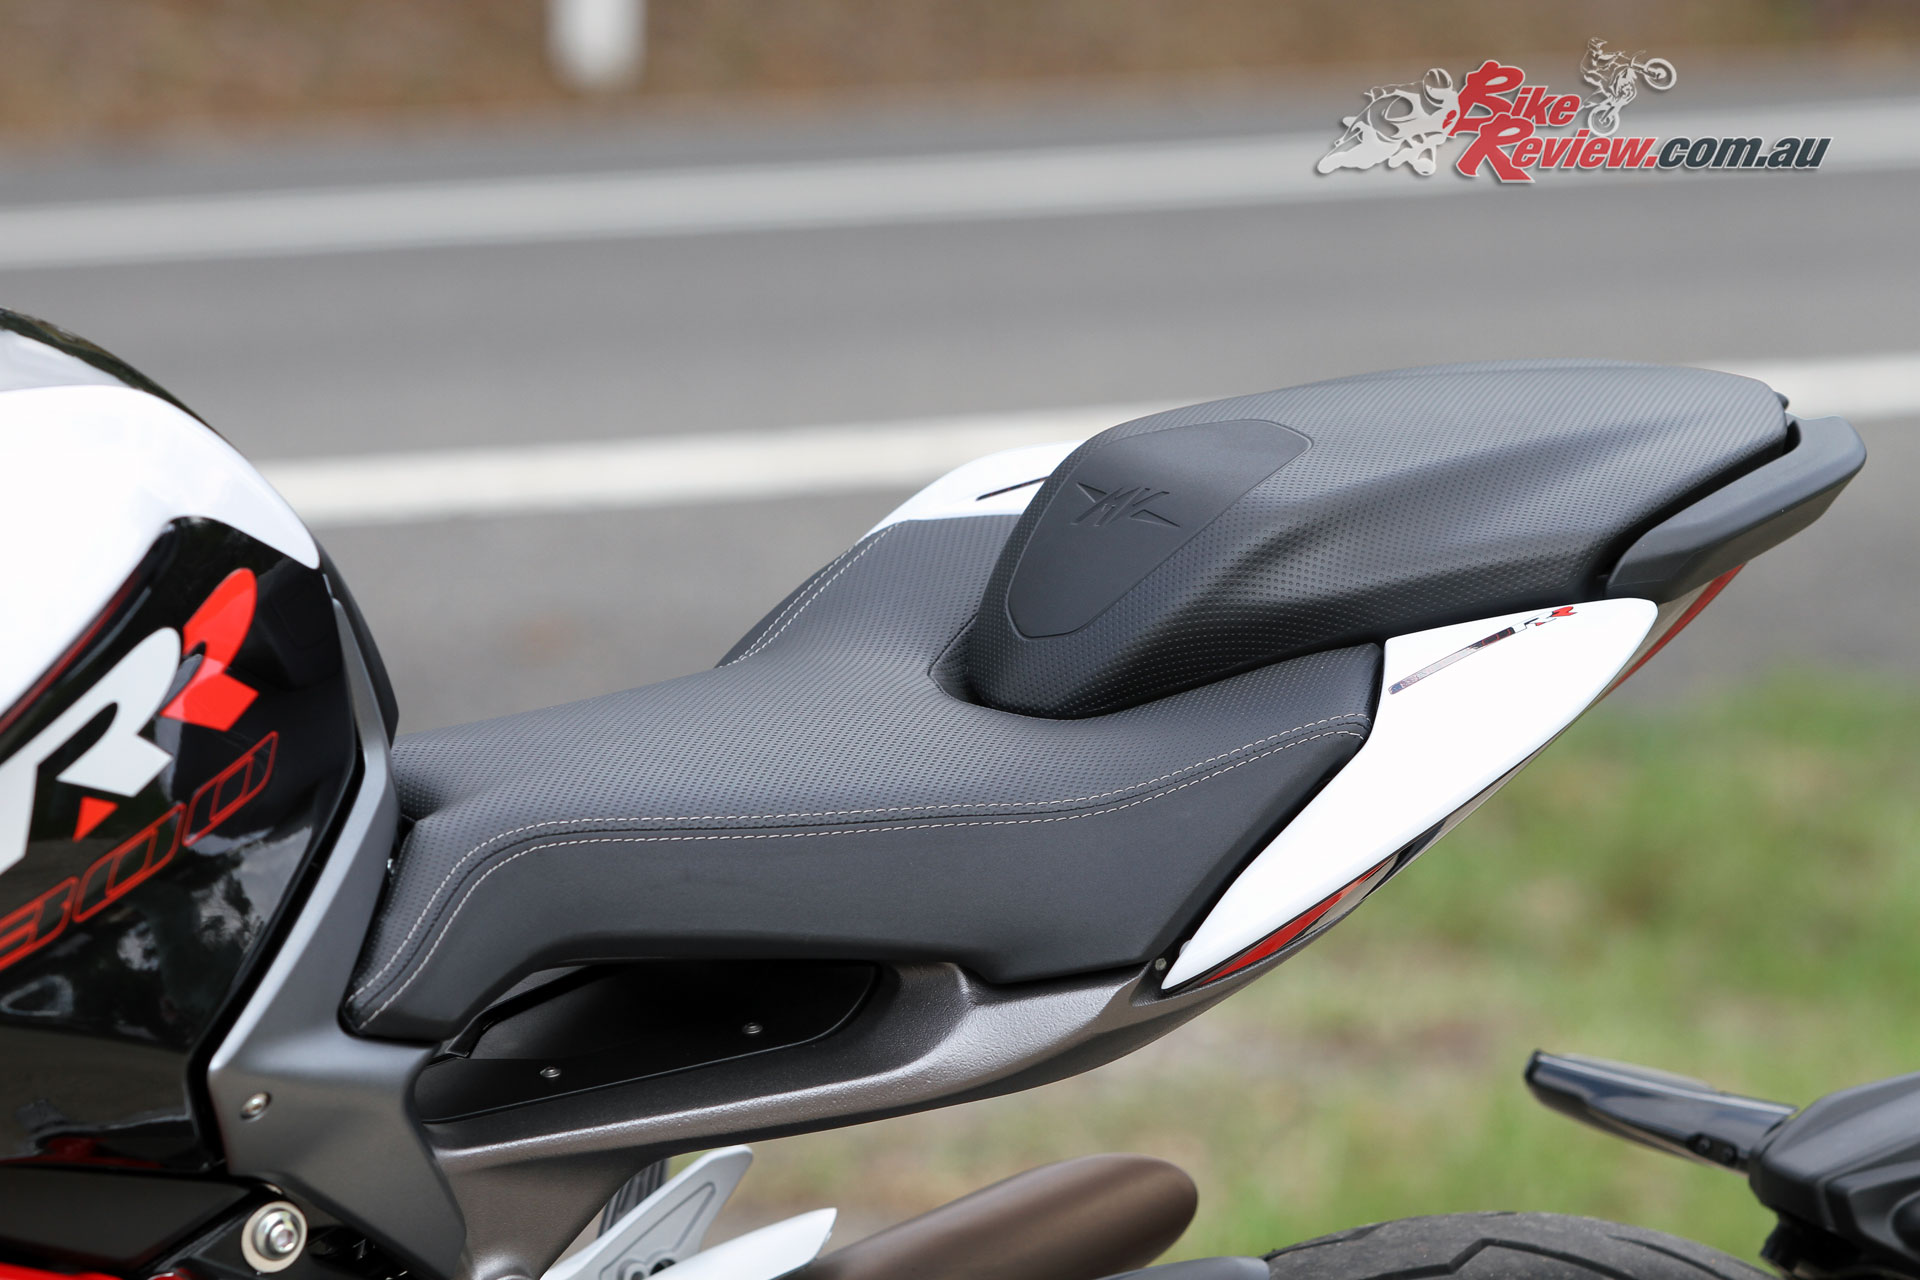 A narrow seat design minimises the reach to the ground, ensuring the Brutale RR will suit more riders